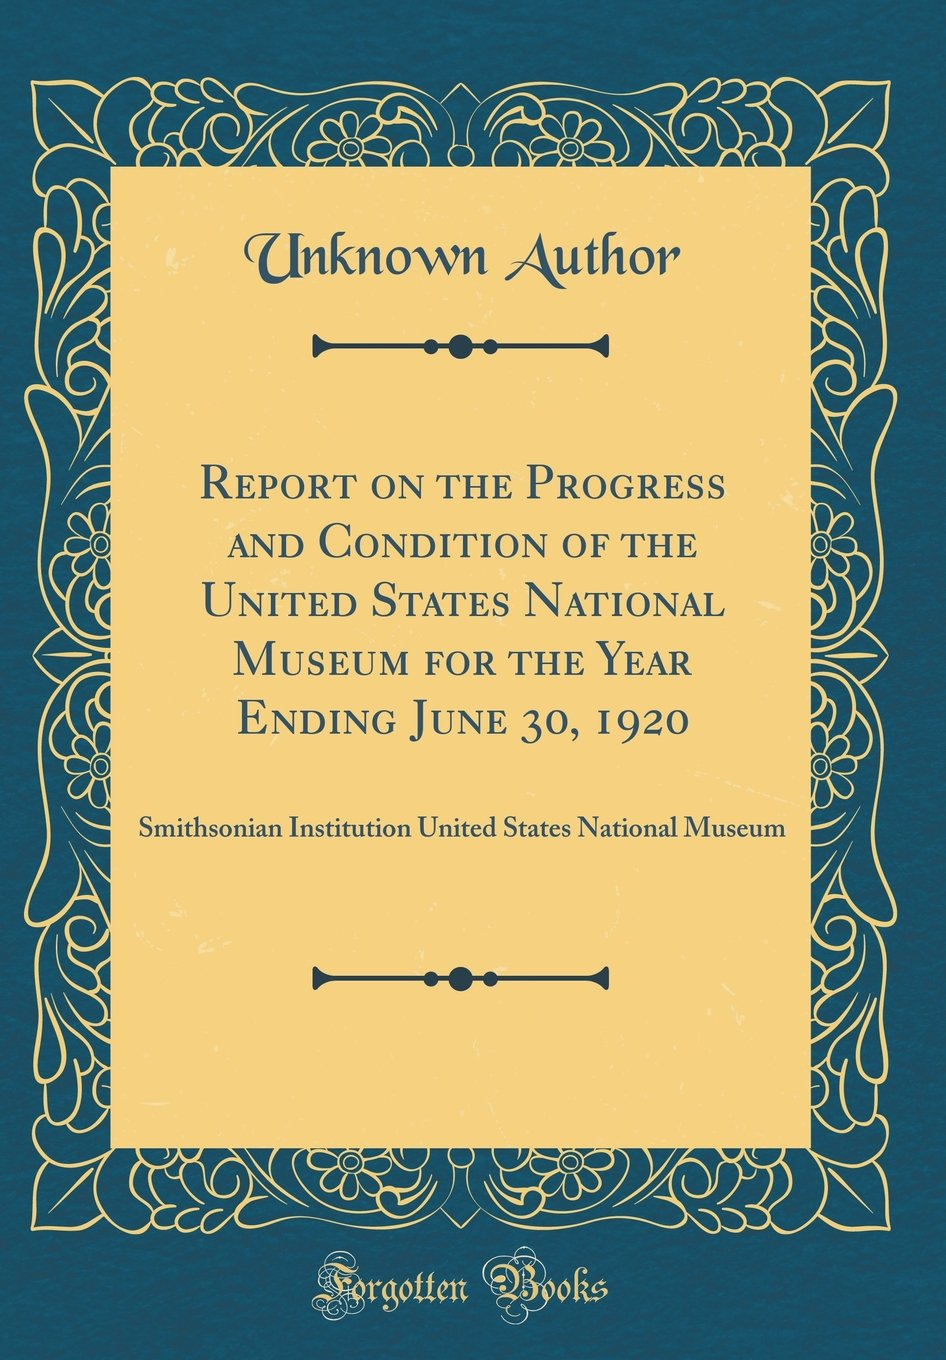 Read Online Report on the Progress and Condition of the United States National Museum for the Year Ending June 30, 1920: Smithsonian Institution United States National Museum (Classic Reprint) PDF